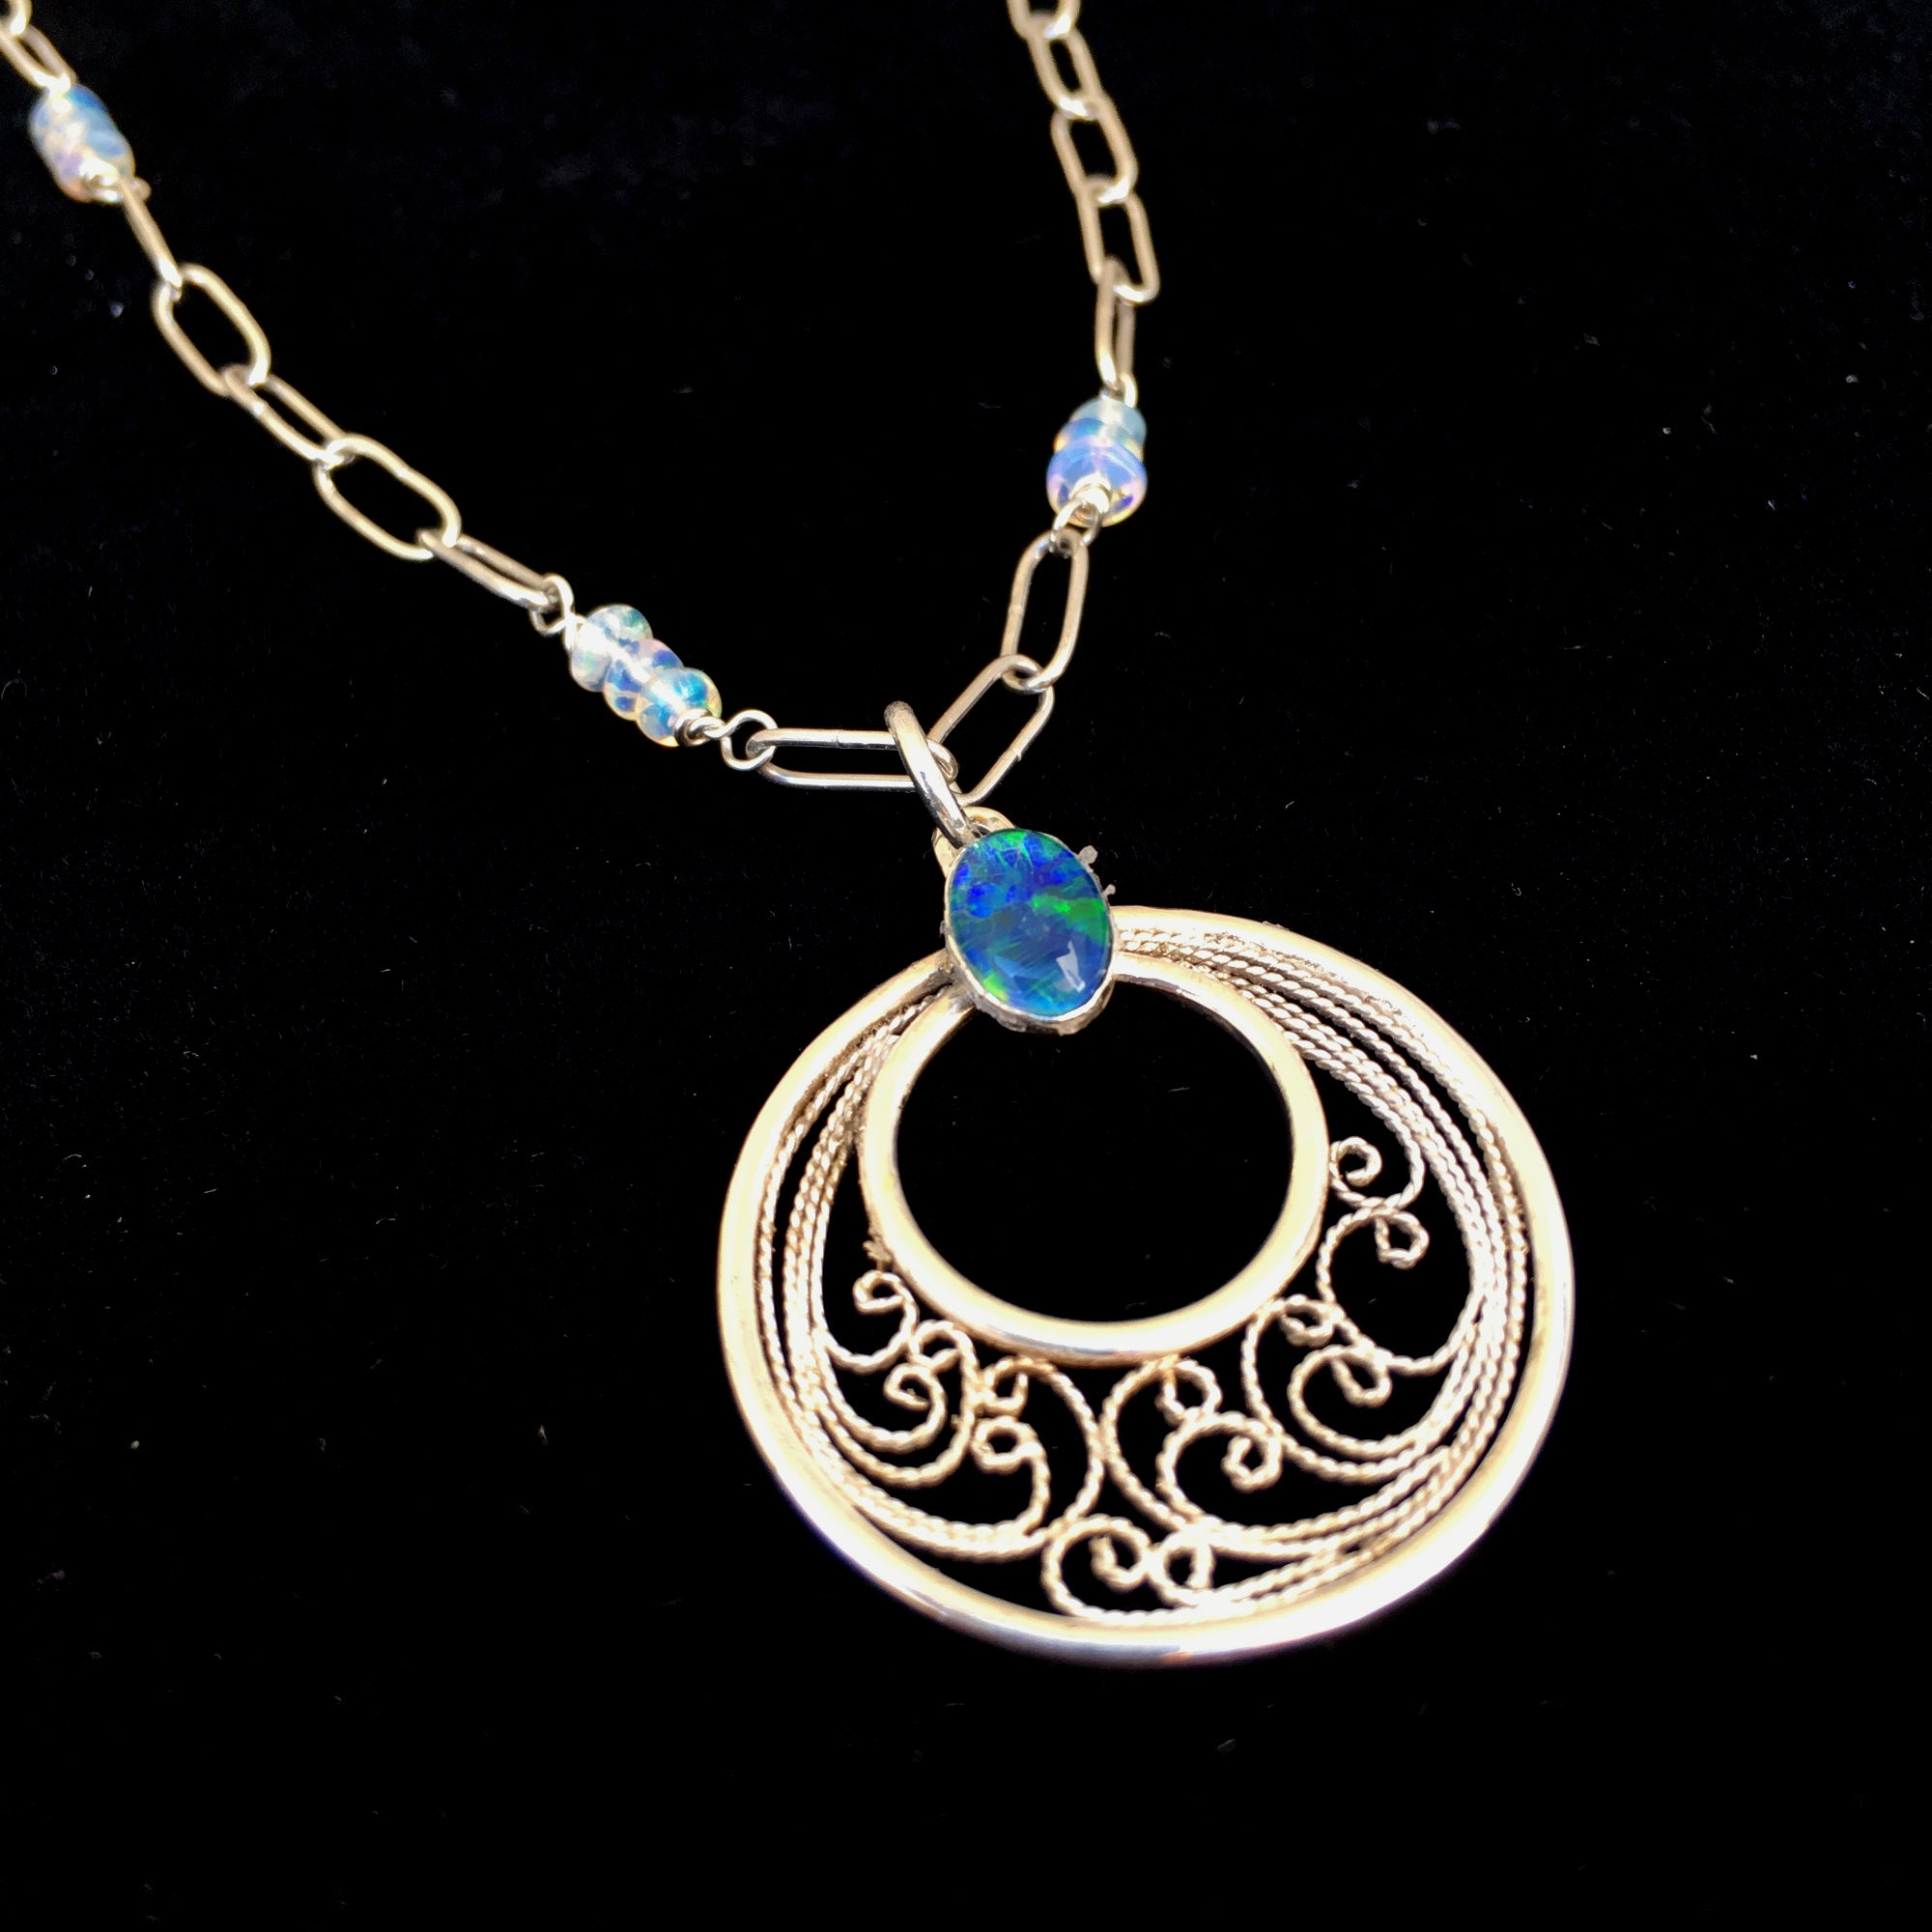 Silver Filigree Black Opal Pendant with Handmade Opal Chain